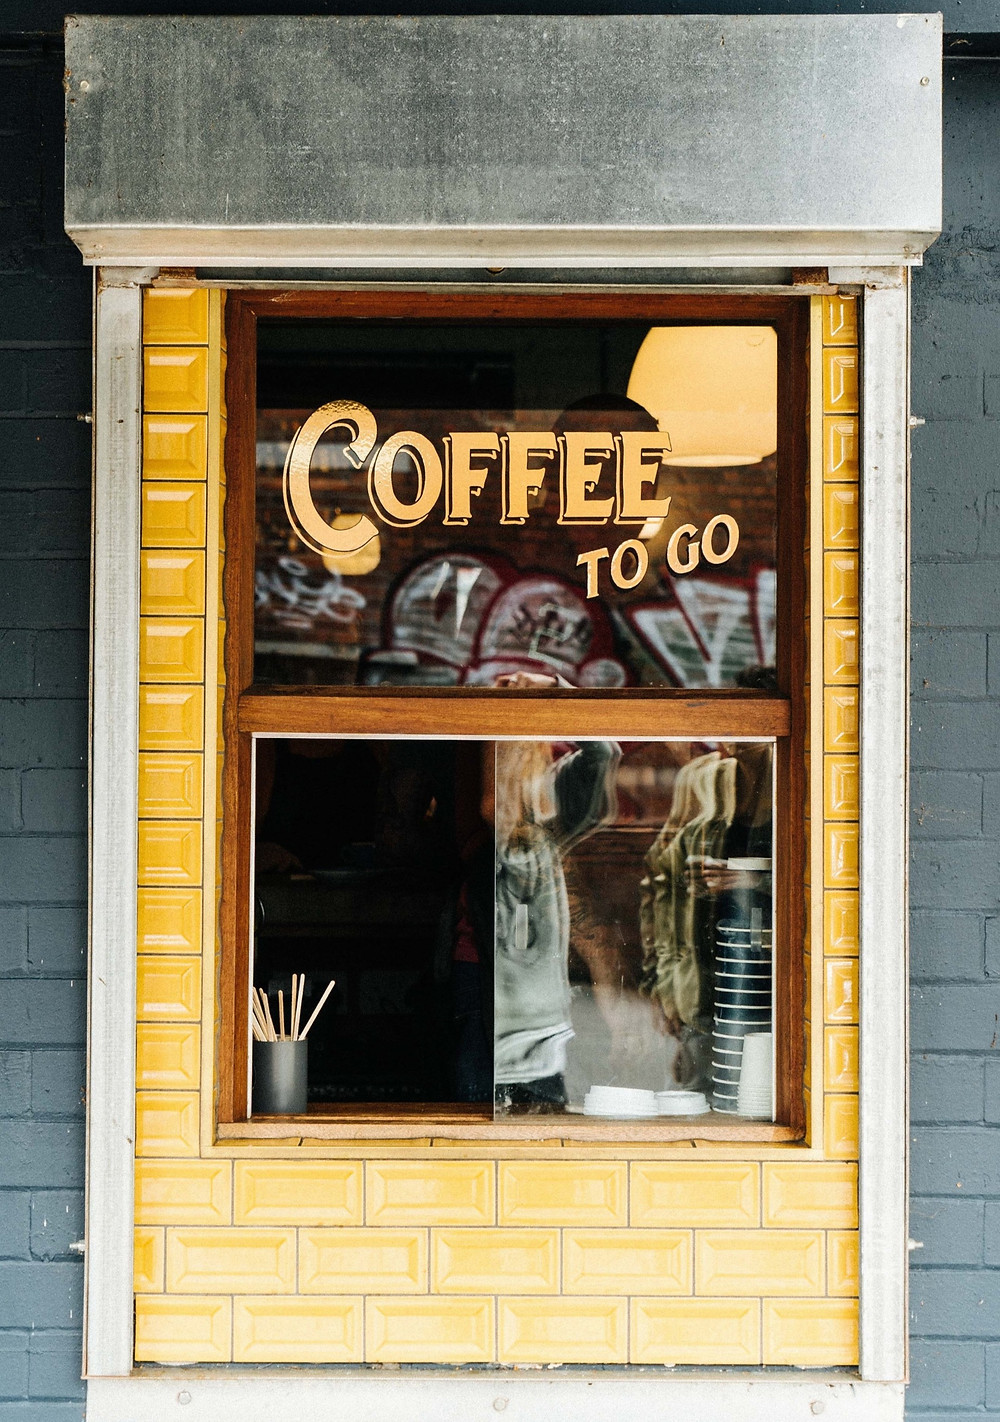 Coffee to go restaurant